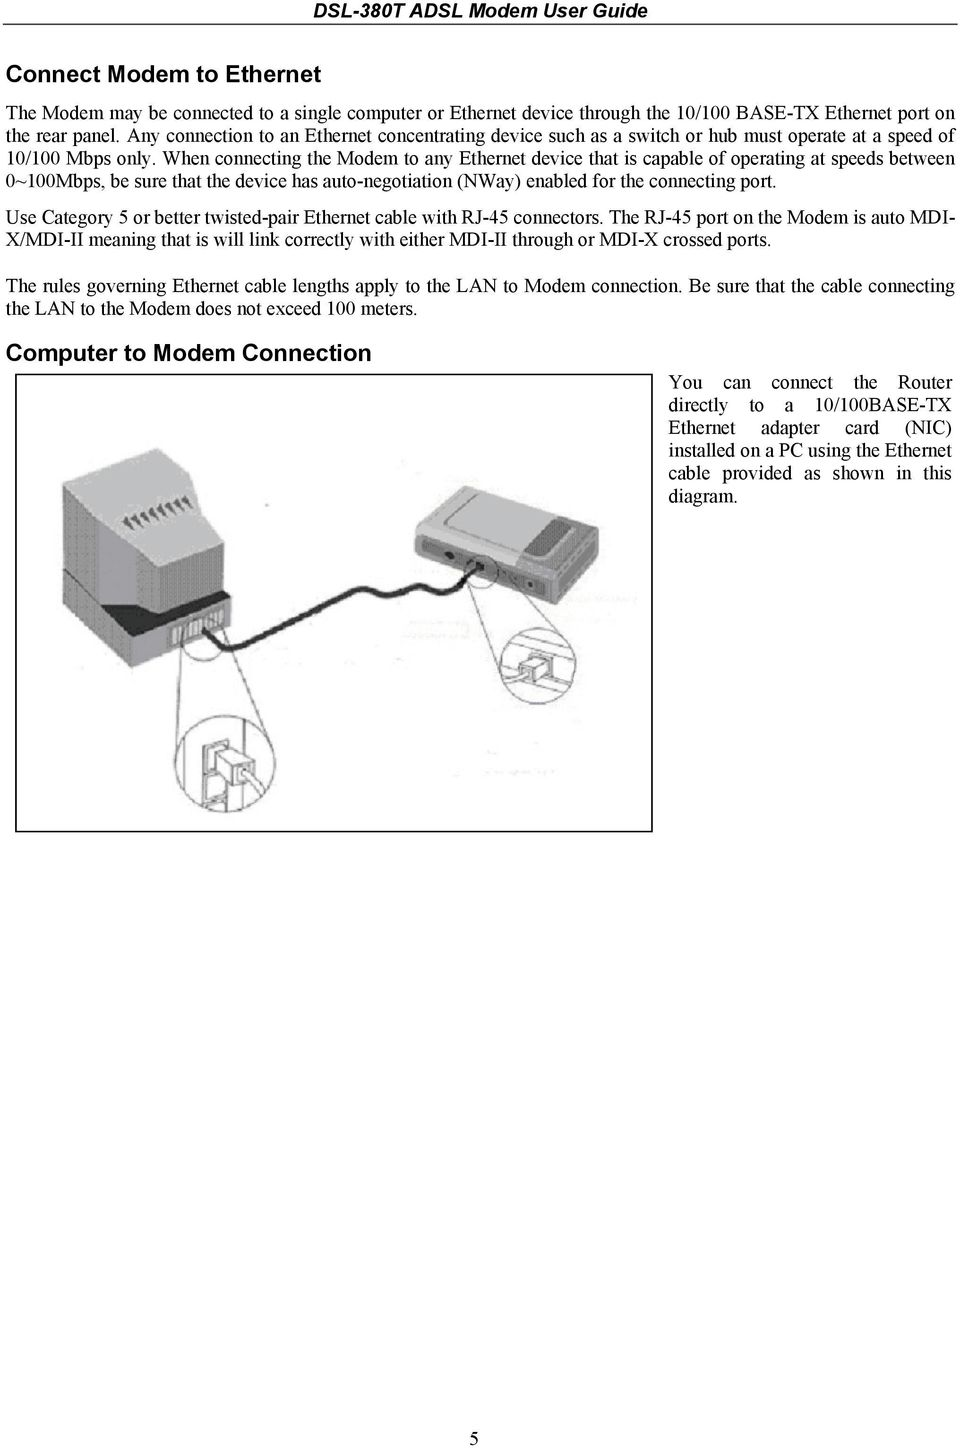 Dsl 380t Adsl Modem User Guide Pdf To Ethernet Cable Wiring Diagram When Connecting The Any Device That Is Capable Of Operating At Speeds Between